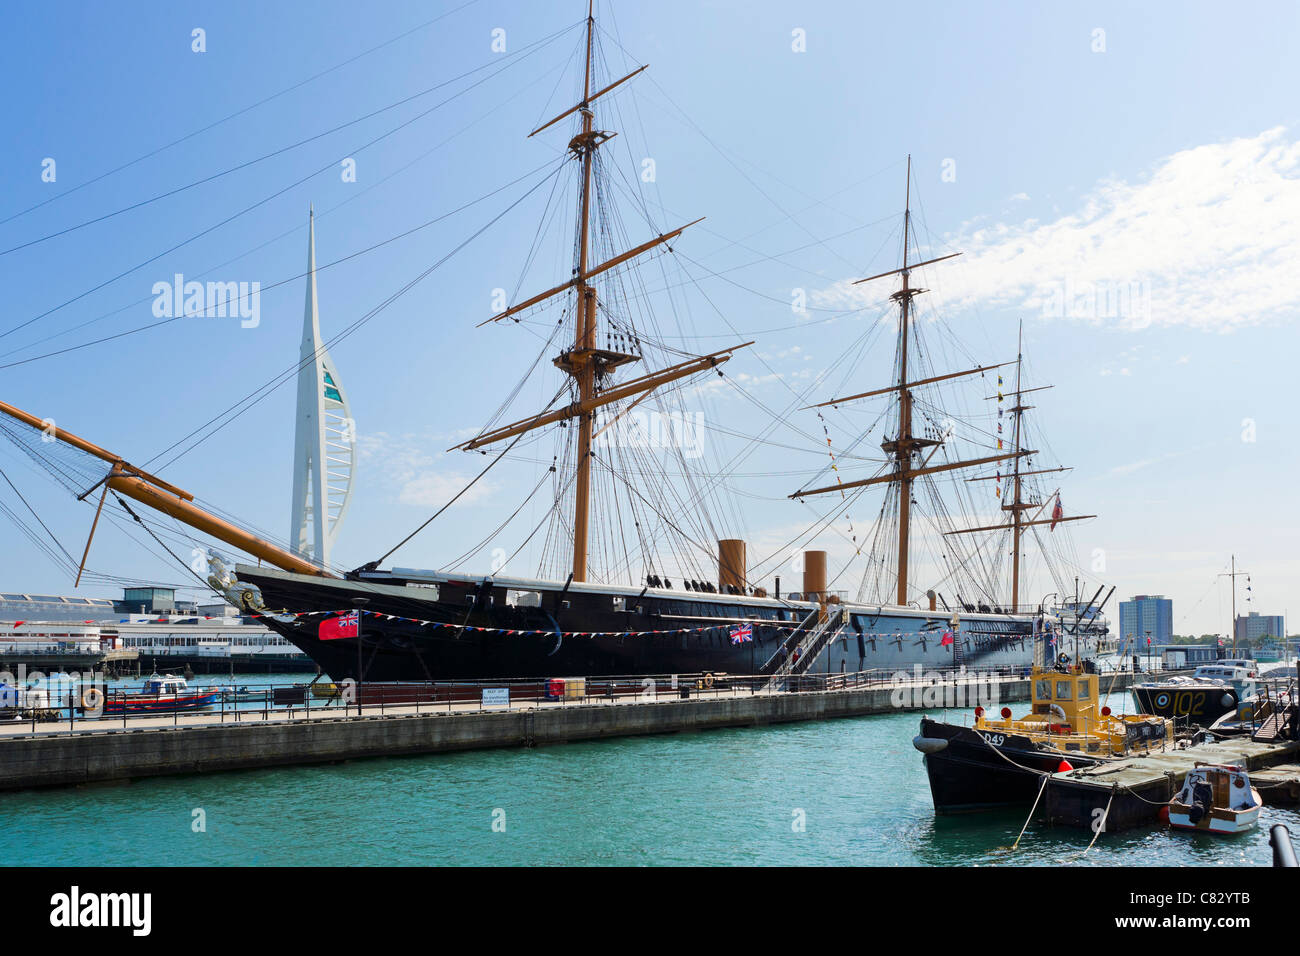 HMS Warrior ( first iron-hulled steam/sail warship from1860) with Spinnaker Tower behind, Portsmouth Historic Dockyard, - Stock Image